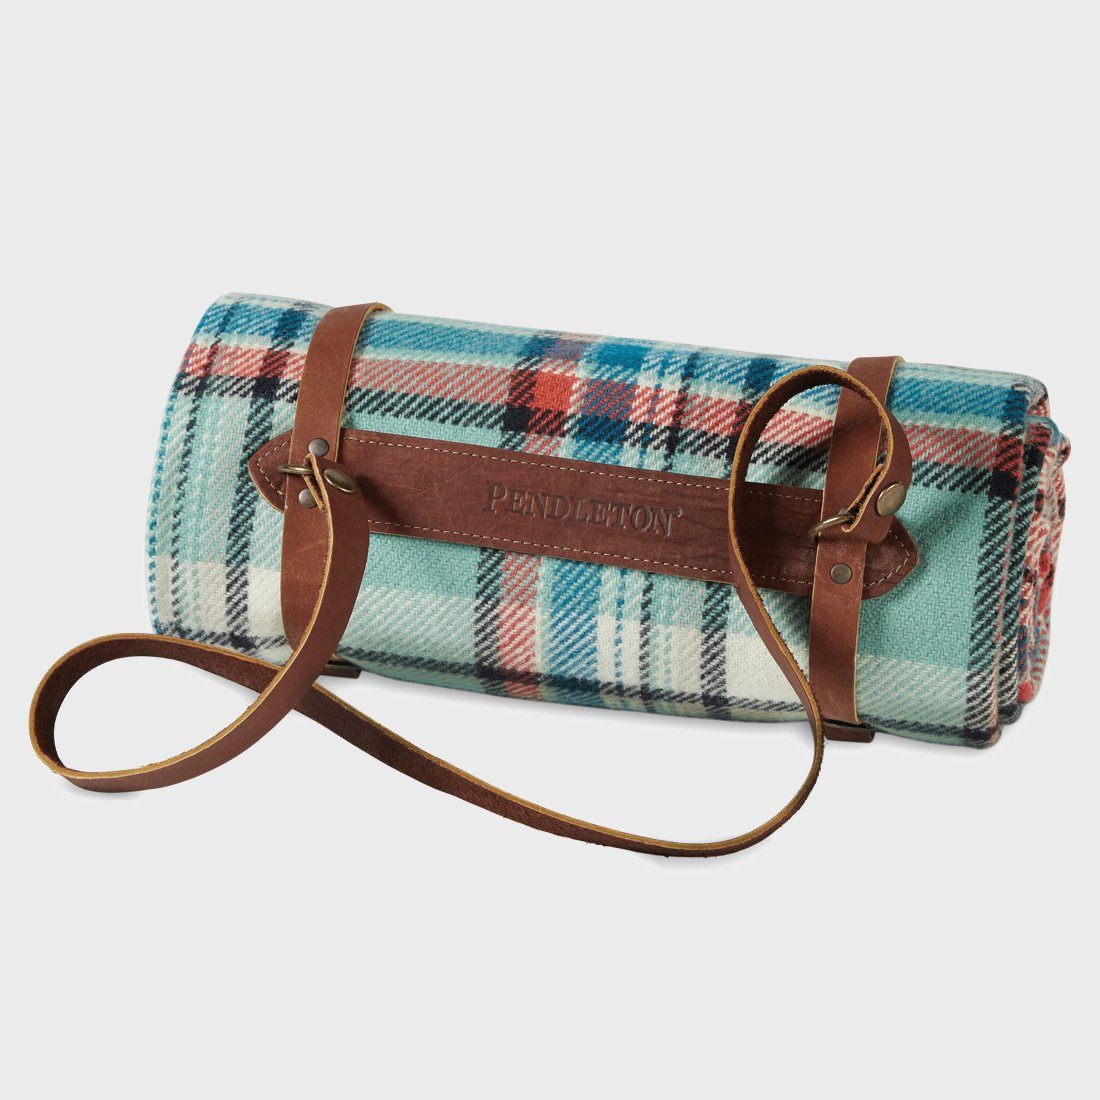 Pendleton Washable Throw With Leather Carrier Aqua Sky